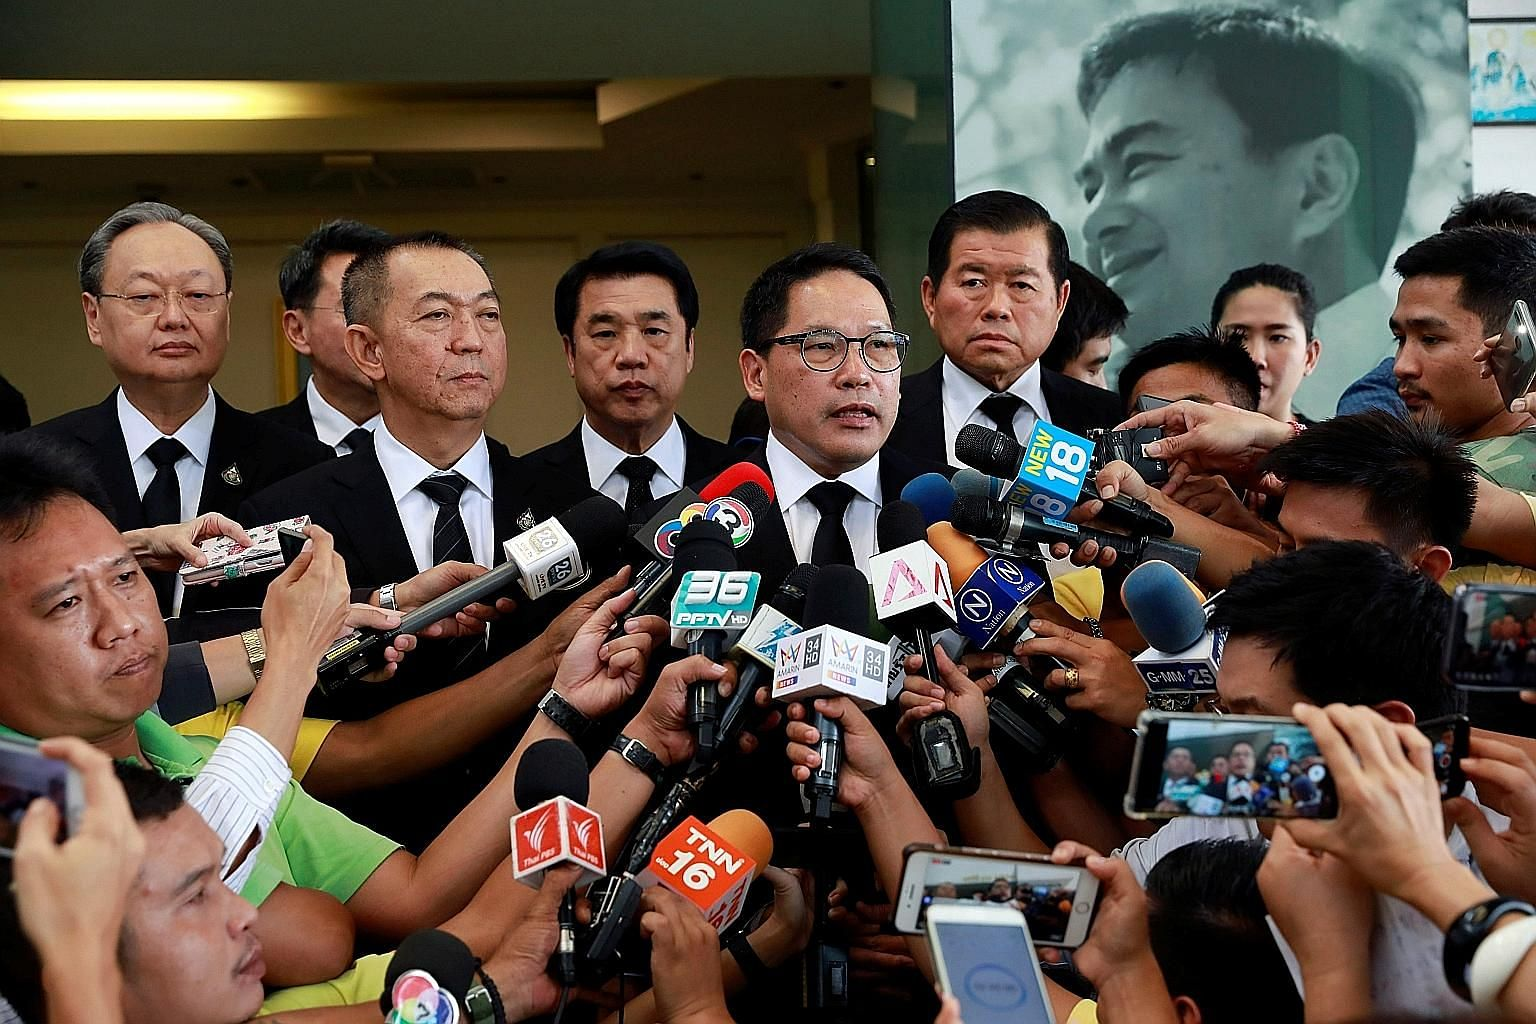 Palang Pracharath leader Uttama Savanayana speaking to reporters after a meeting with the Democrat Party leader yesterday at the Democrats' head office in Bangkok. The Democrats will meet today to discuss Palang Pracharath's offer, but the party is w